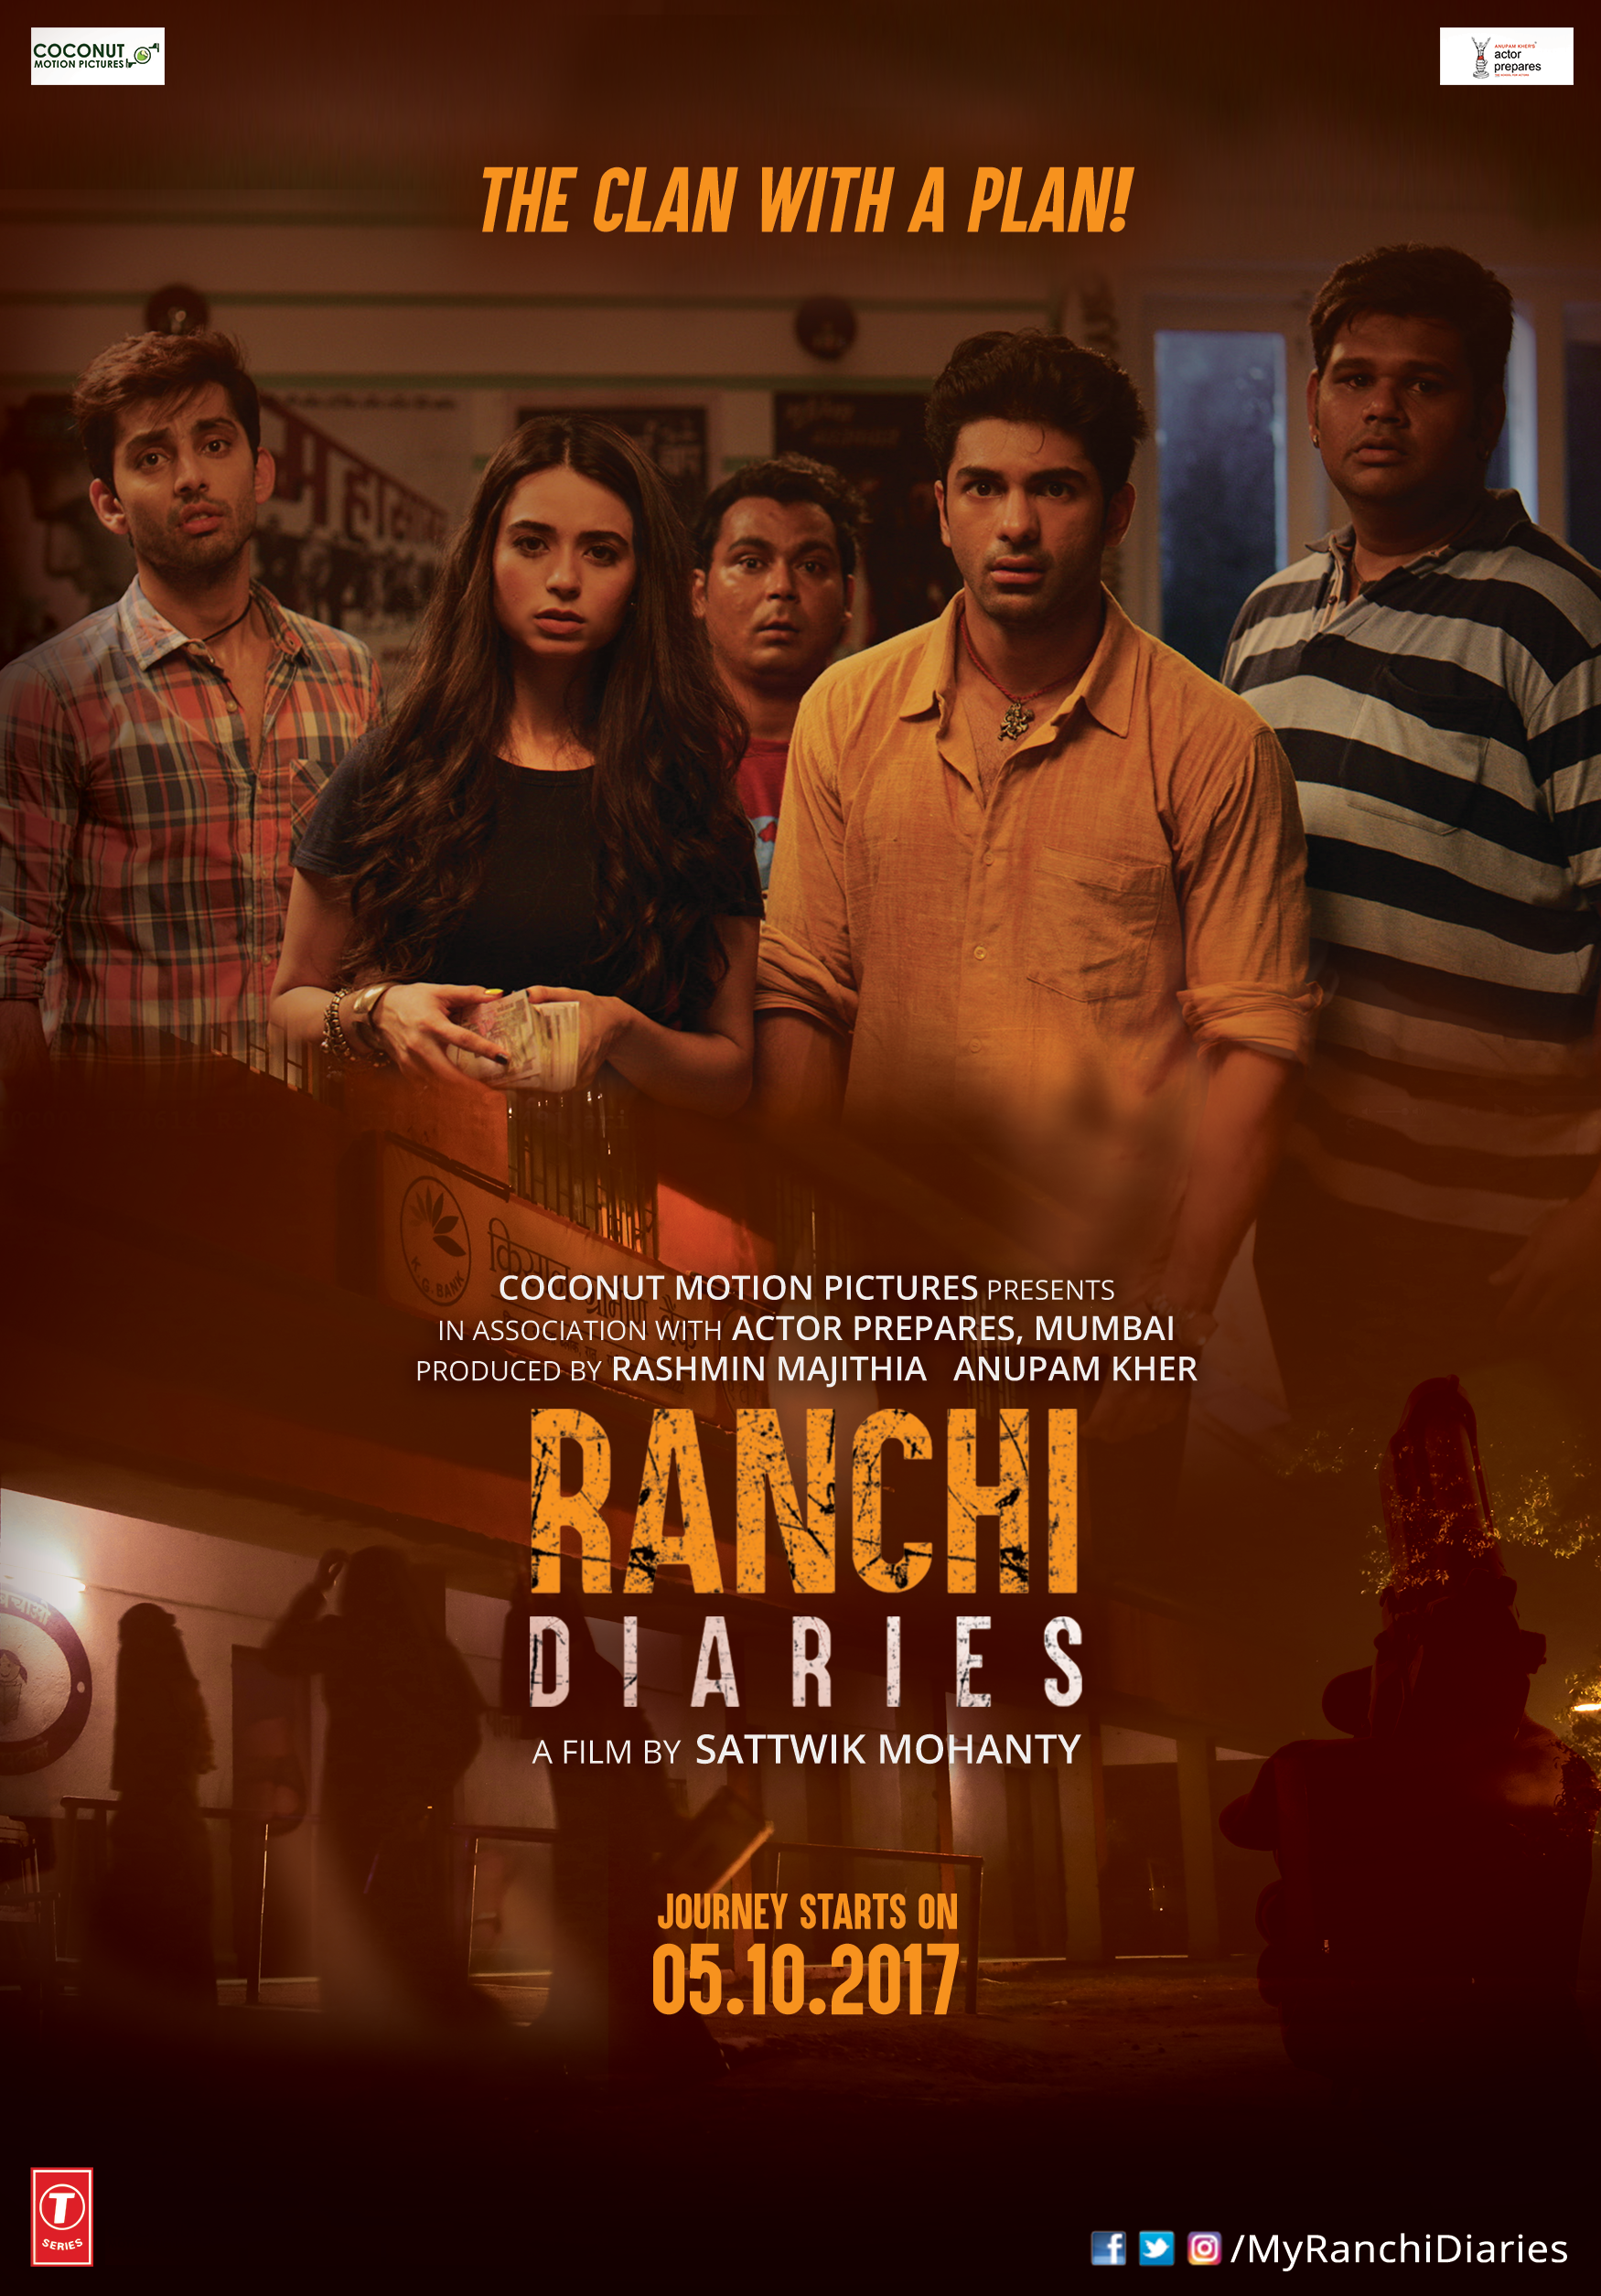 Ranchi Diaries - Poster 1